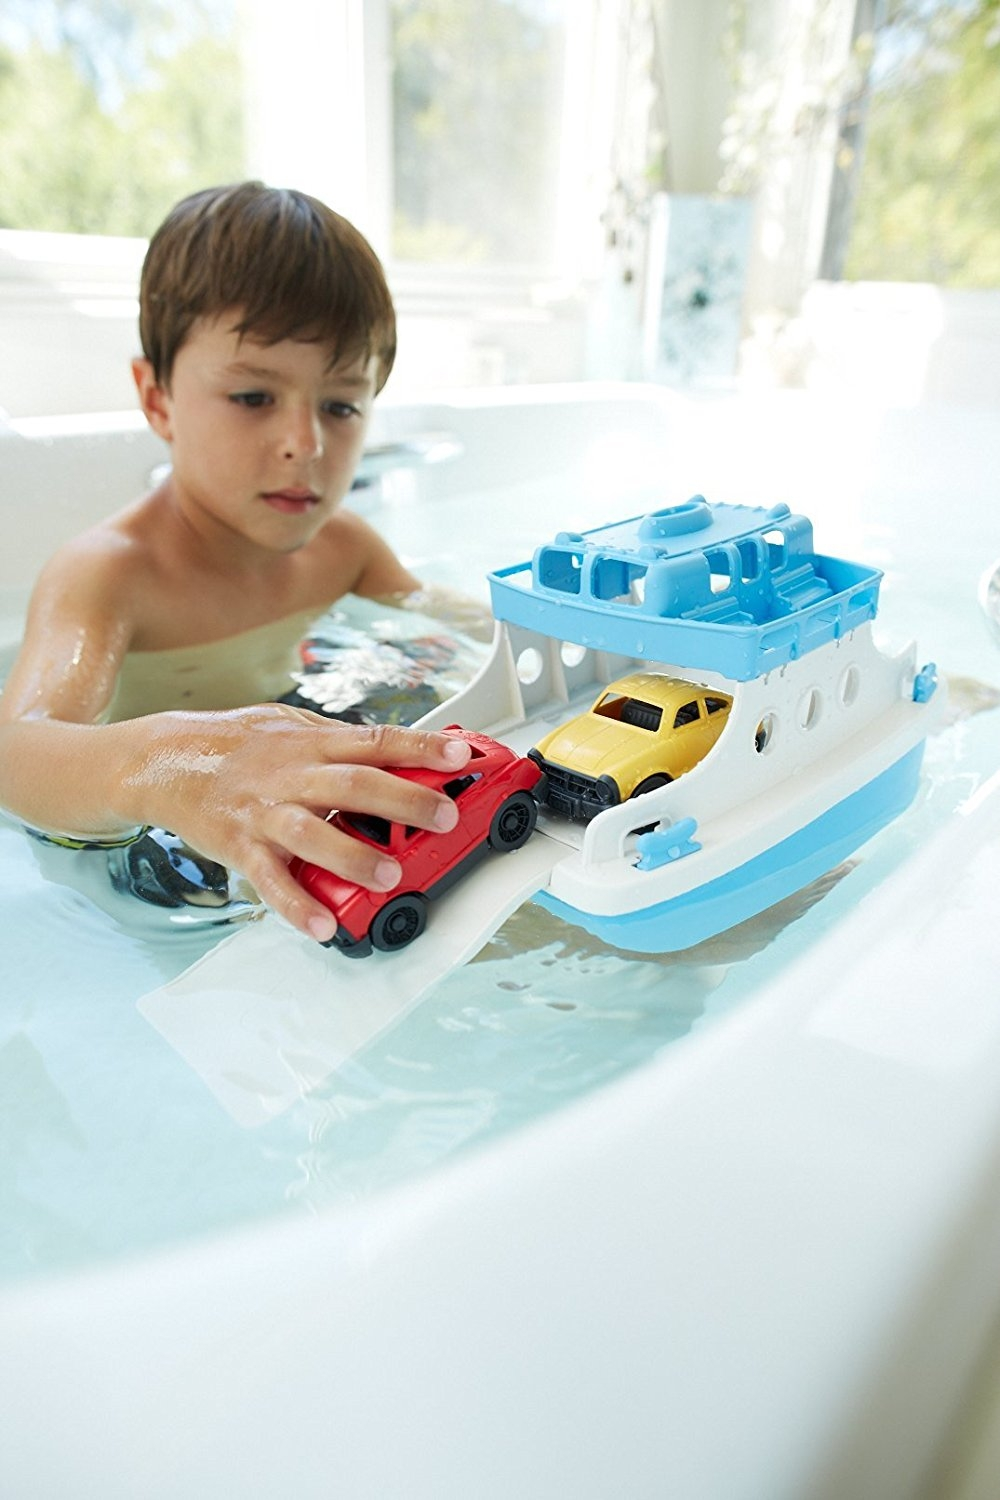 Green Toys Ferry Boat With Mini Cars Bathtub Toy Best Offer